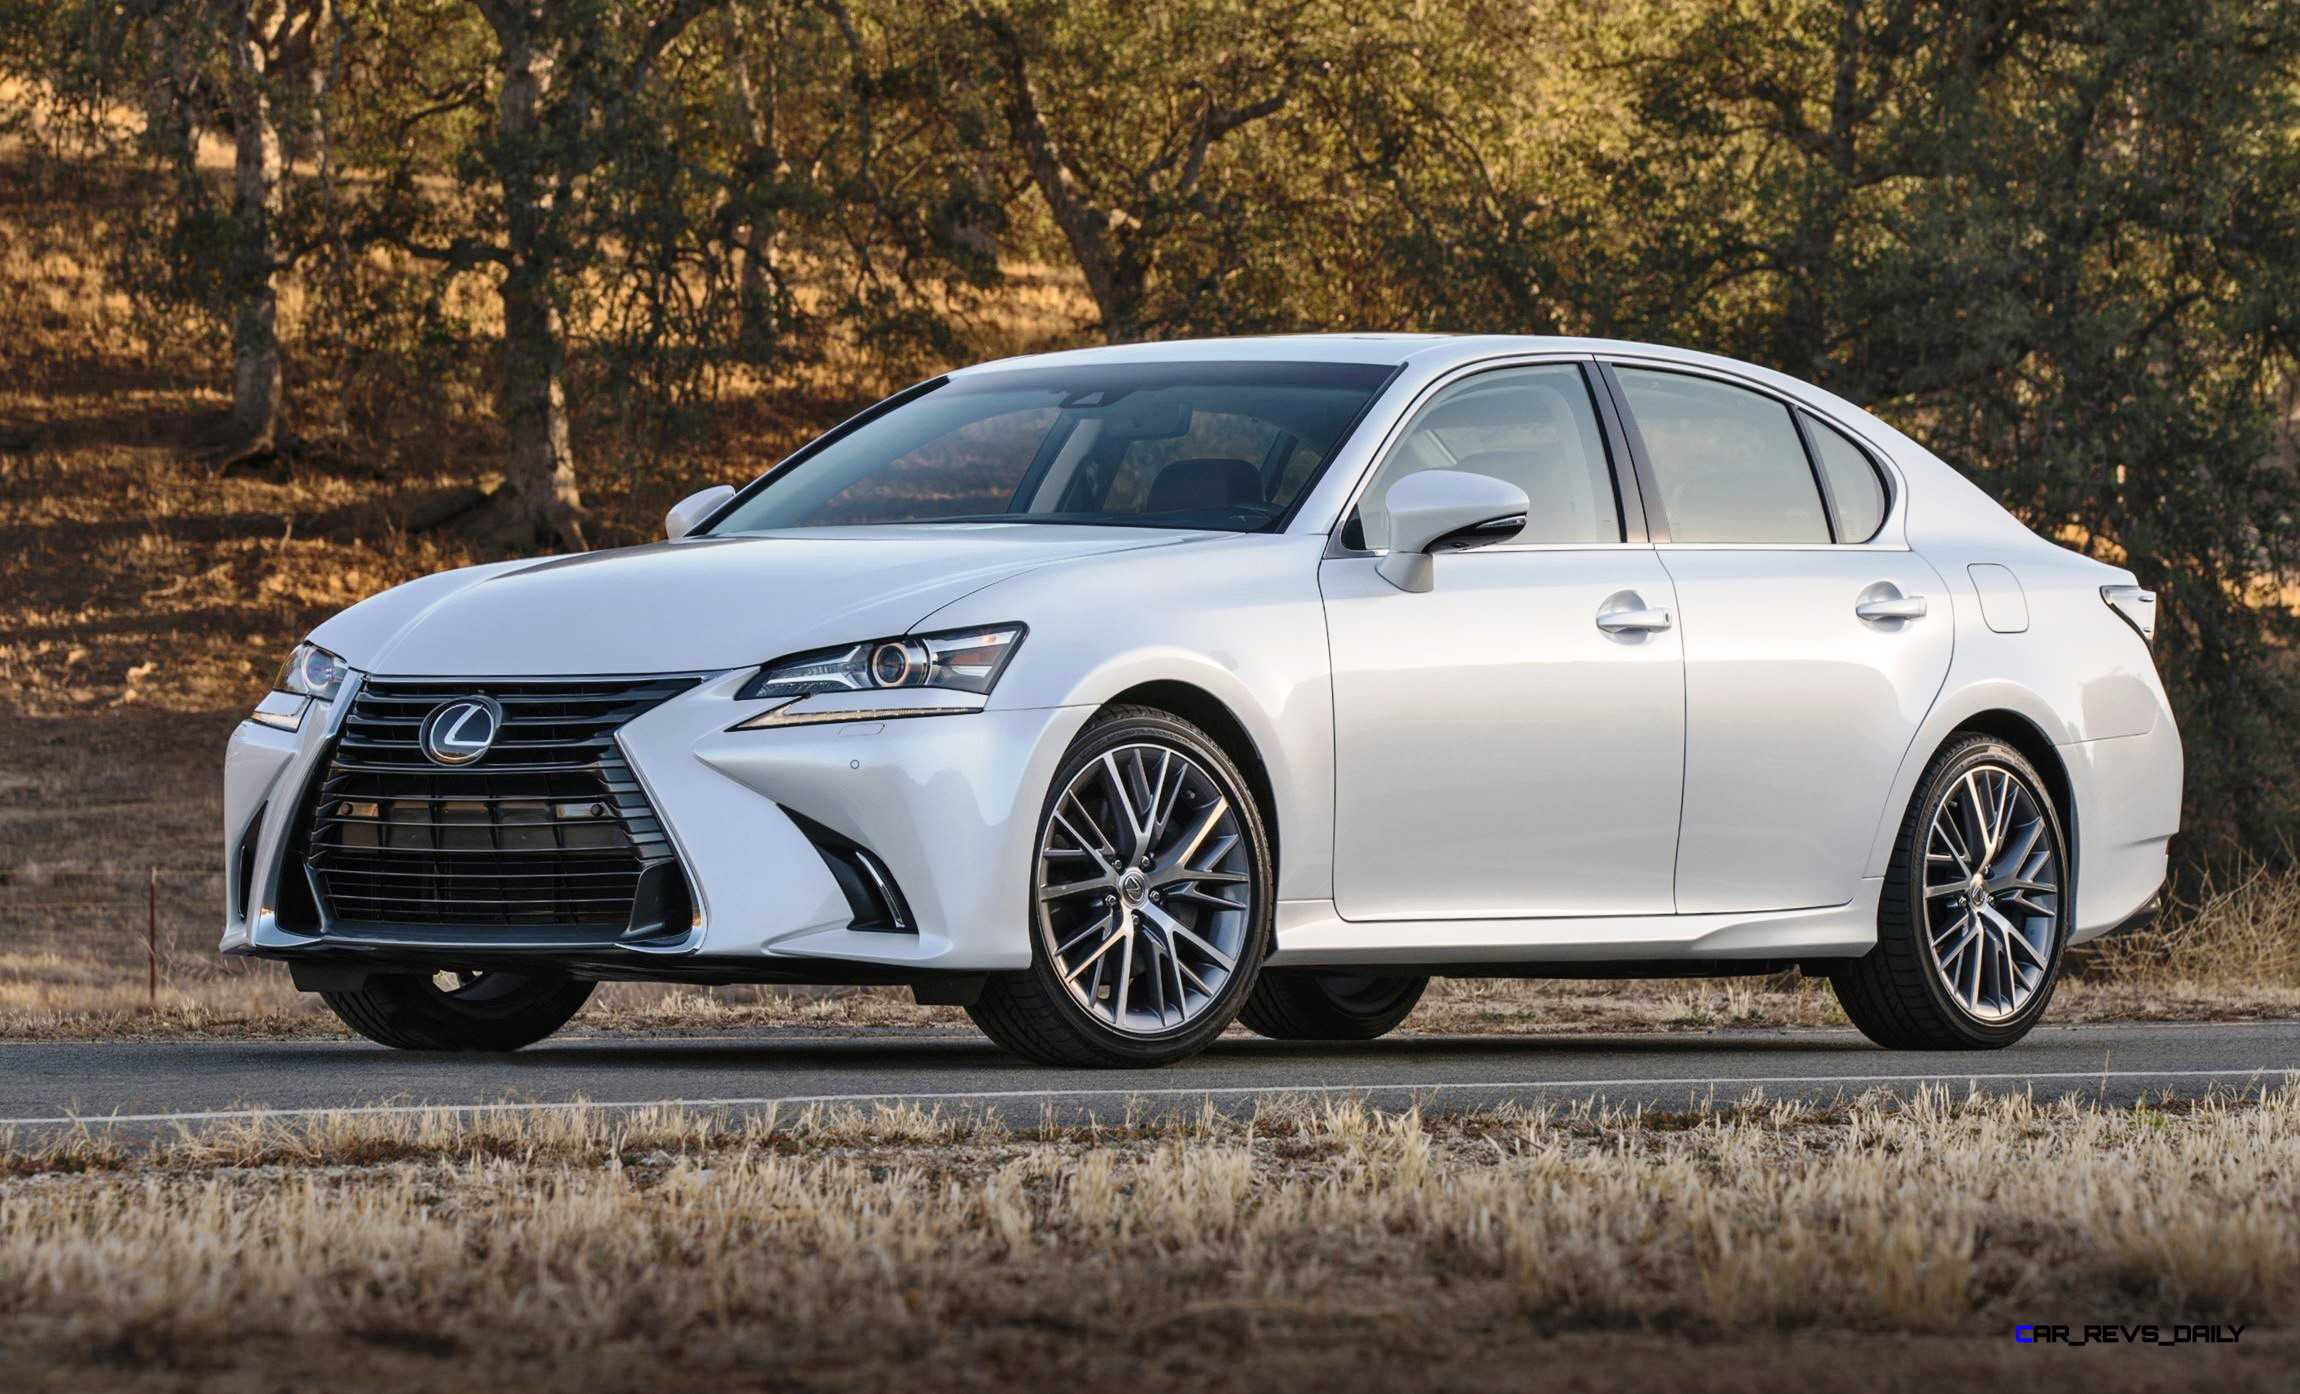 Lexus Is 350 >> 2016 Lexus GS350 Facelift Brings GSF and RC-Inspired Nose +4WS and Active Intake – Car-Revs ...